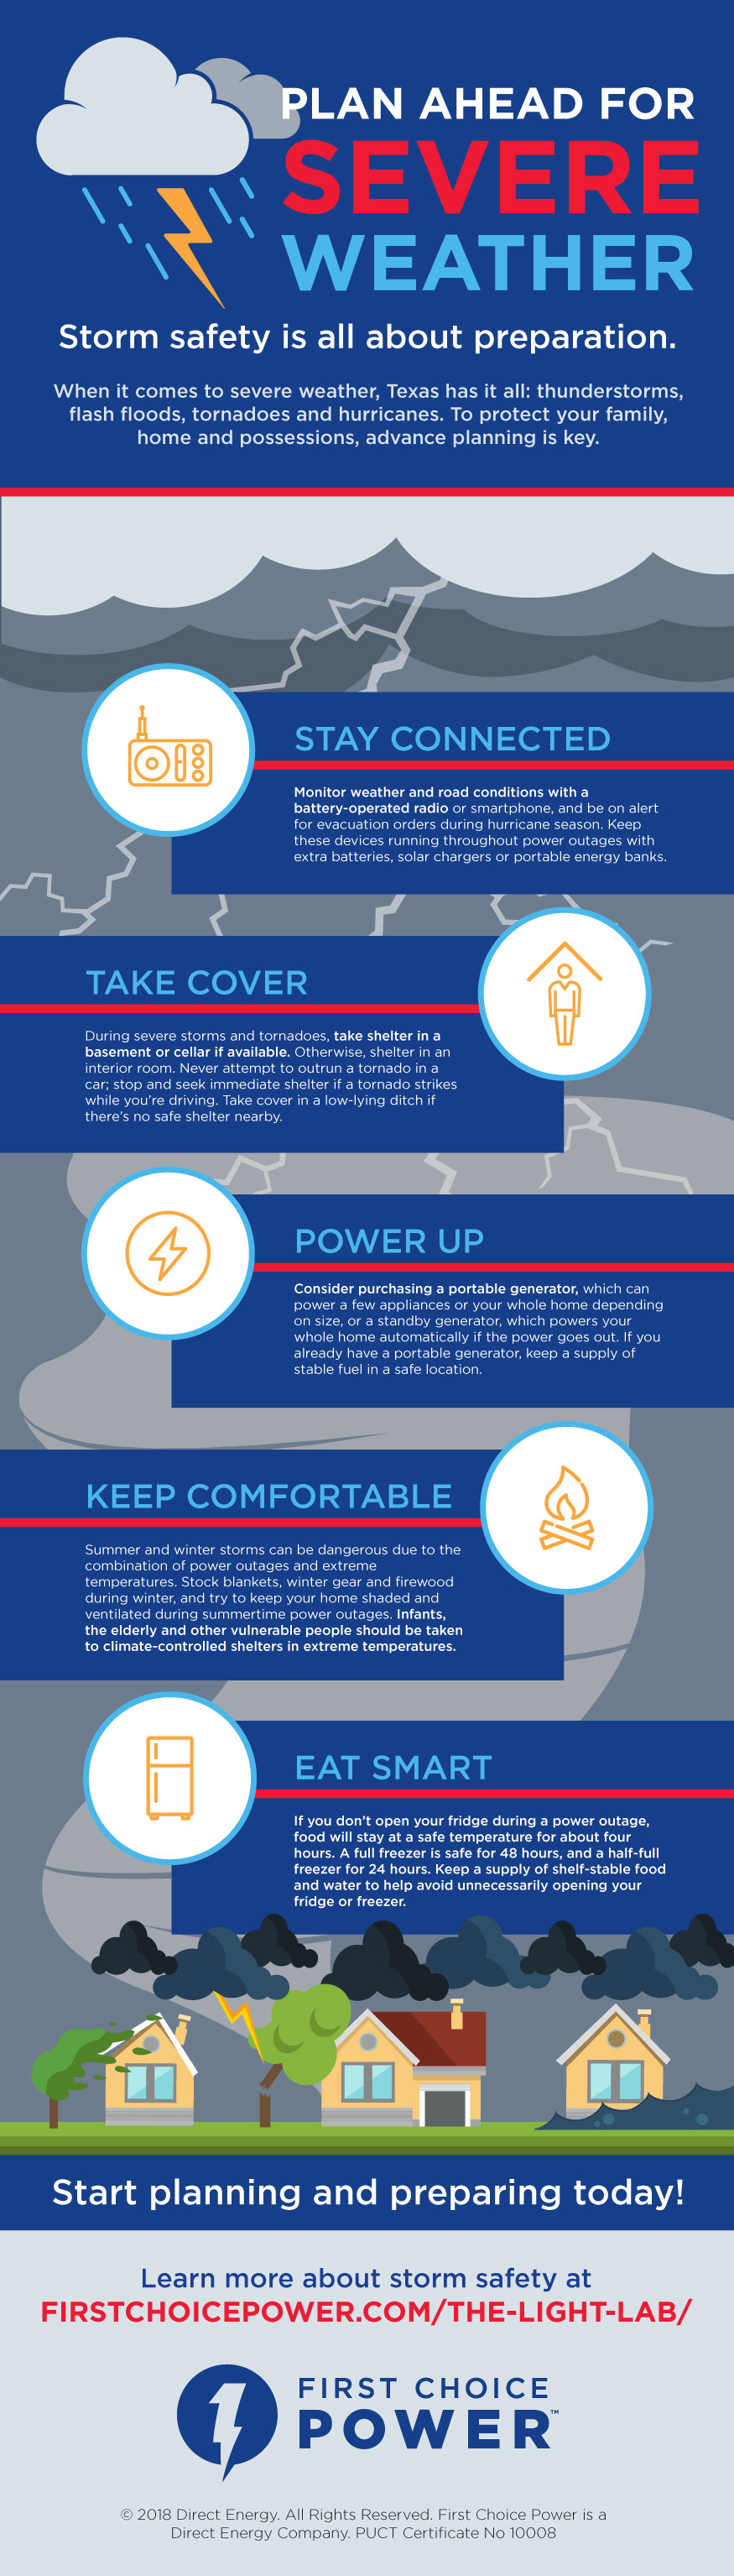 Plan Ahead for Severe Weather #infographic #Weather #Severe Weather #infographics #Storm #Infographic